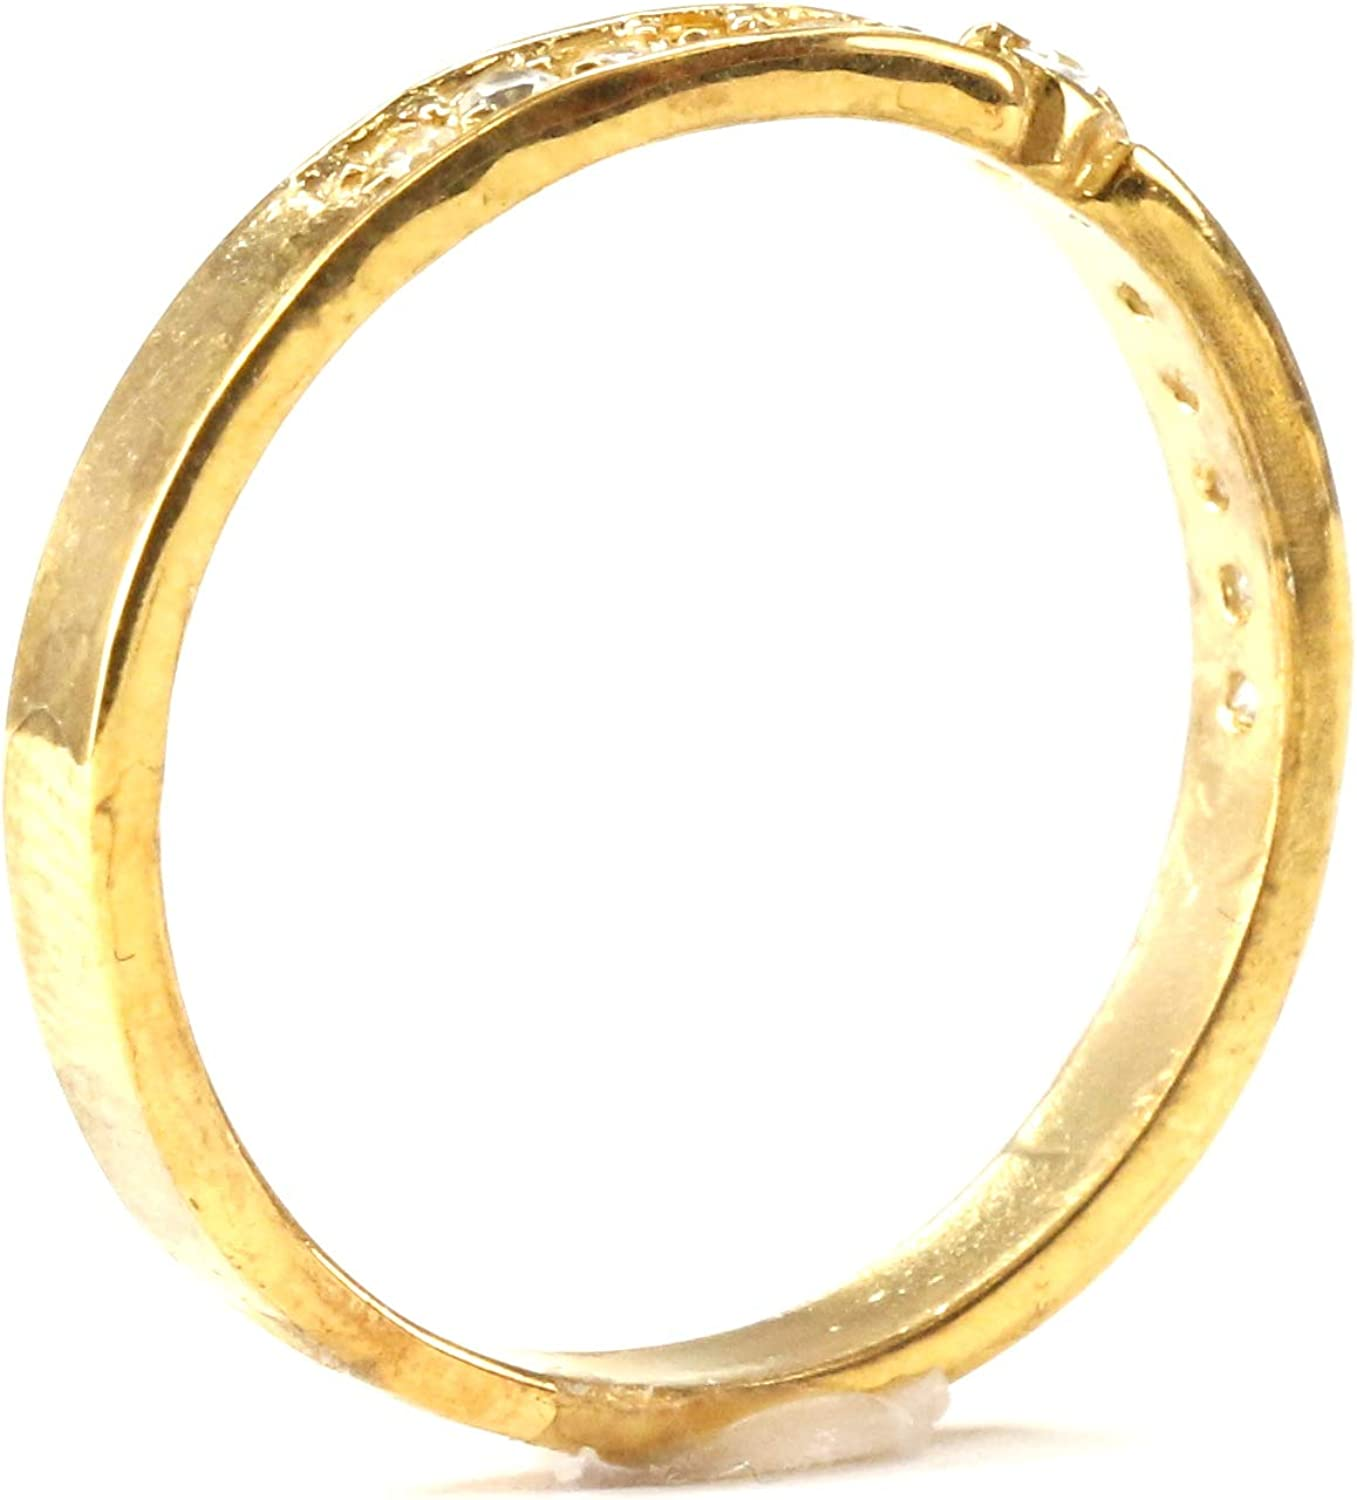 Forever22karat 22k Simple Charm Zirconia Solid Gold Ring Band 22k Plated R2123